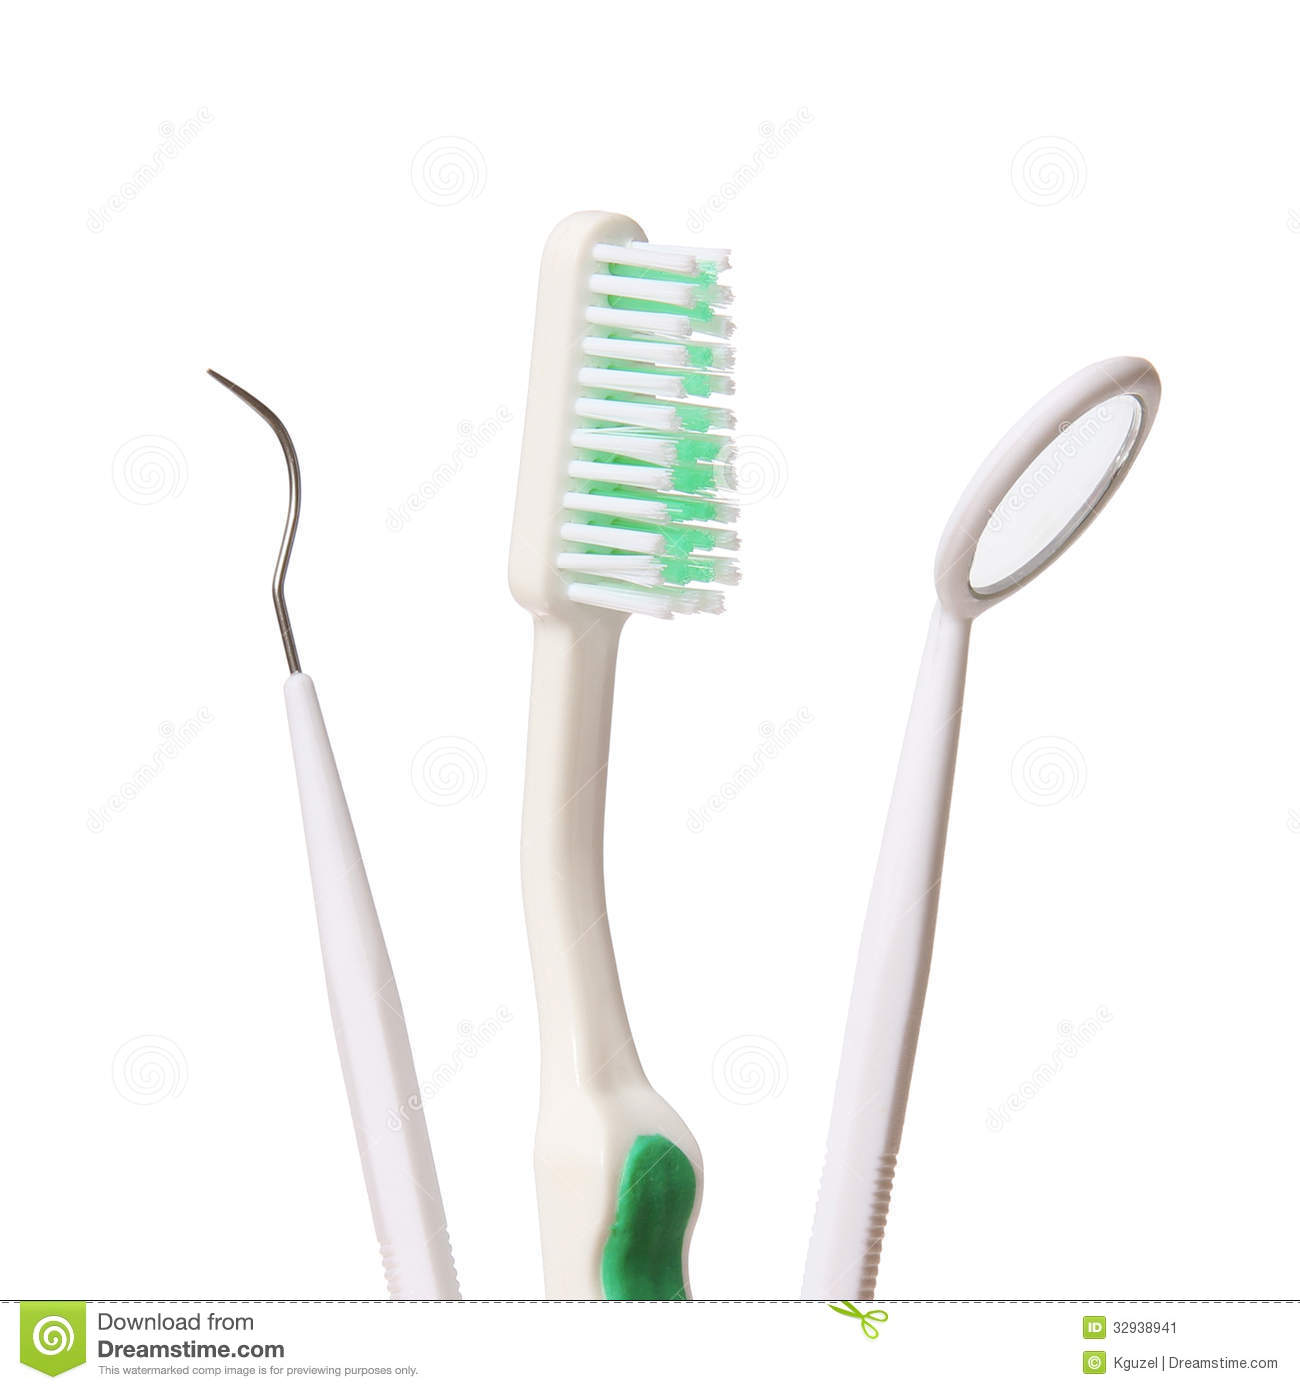 dental-care-toothbrush-dental-mirror-explorer-isolated-white-background-dentist-tools-32938941.jpg